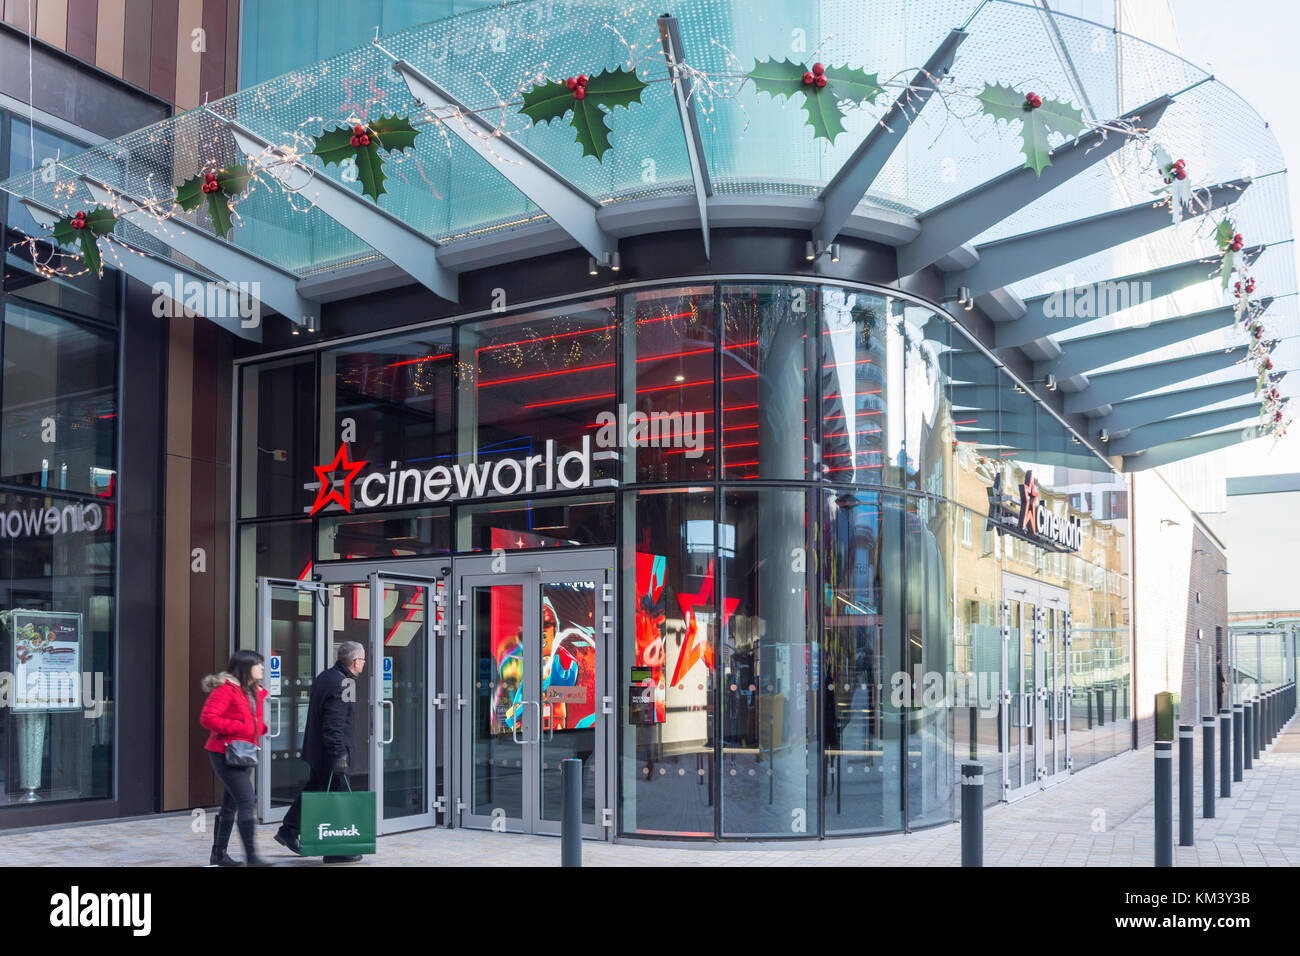 Cineworld Cinema, The Lexicon shopping centre, Eagle Lane, Bracknell, Berkshire, England, United Kingdom Stock Photo